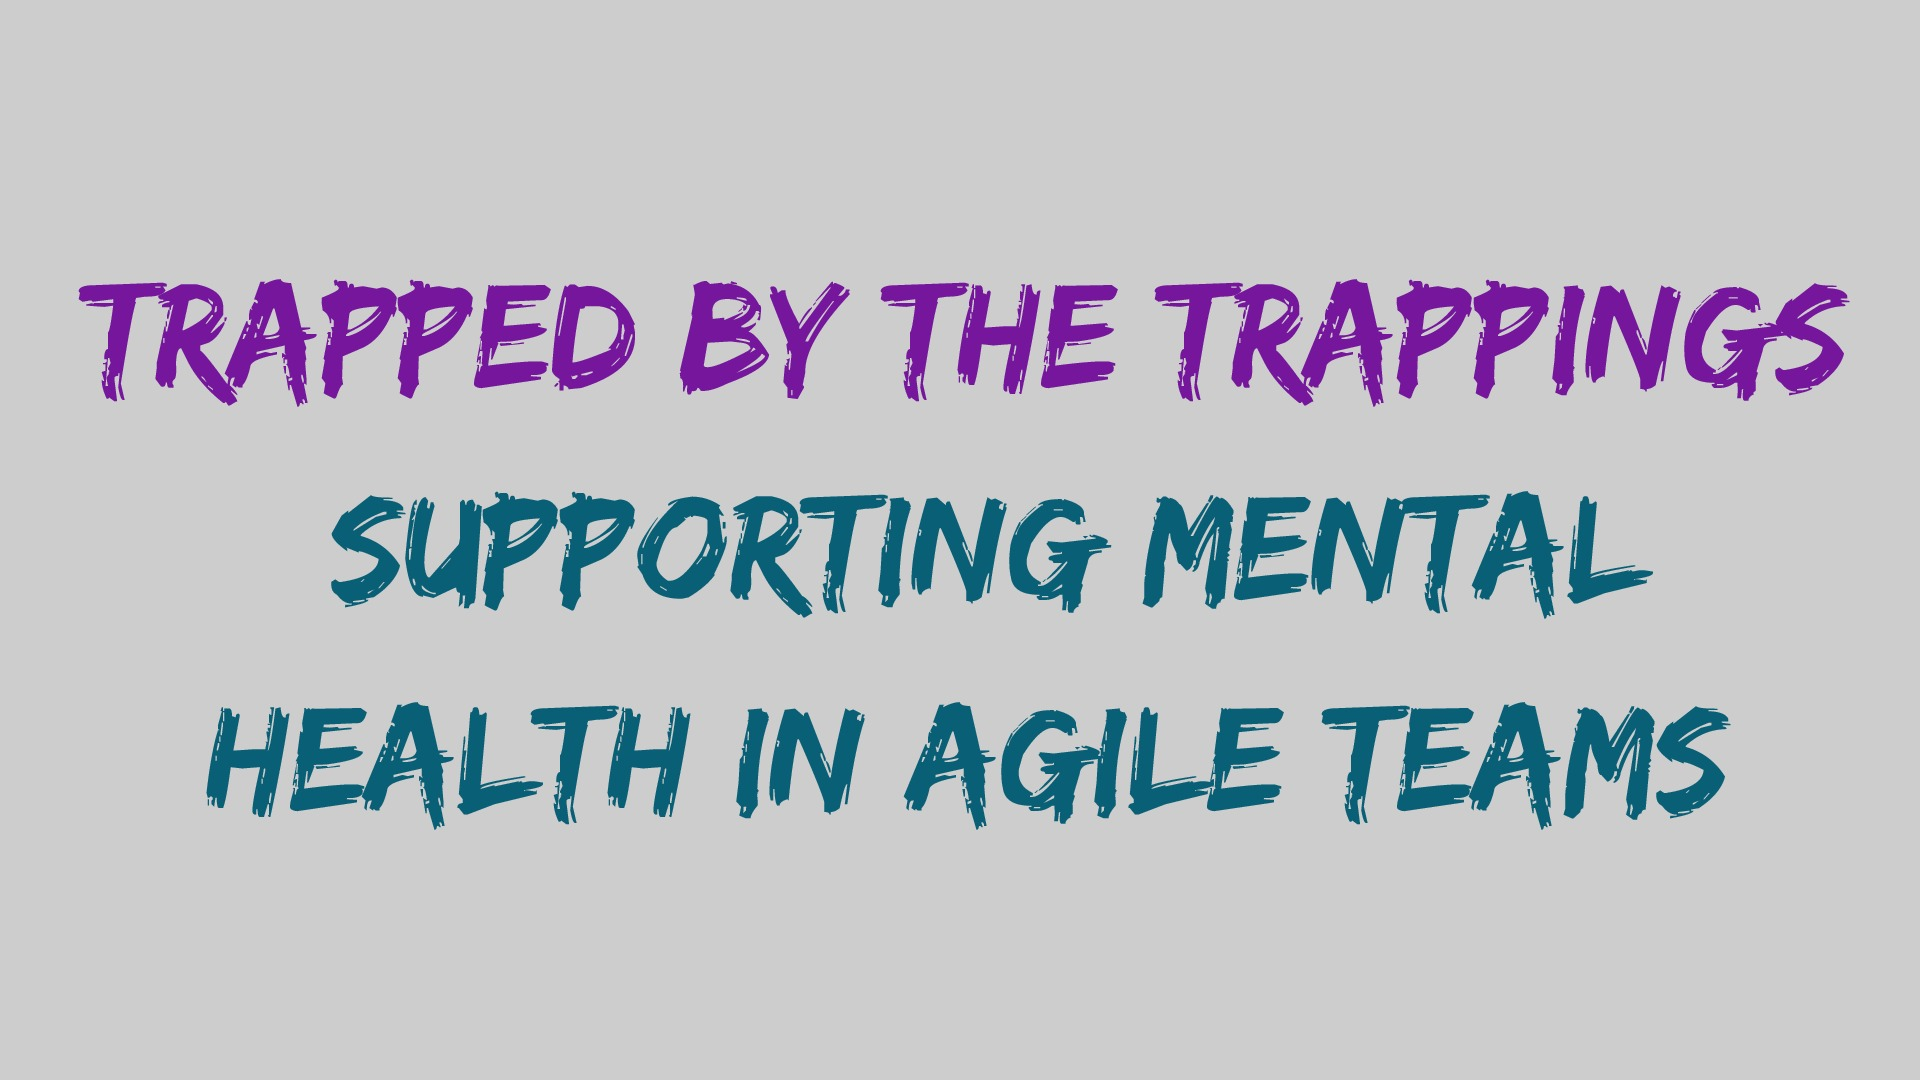 Trapped by the Trapping: Supporting mental health in Agile teams